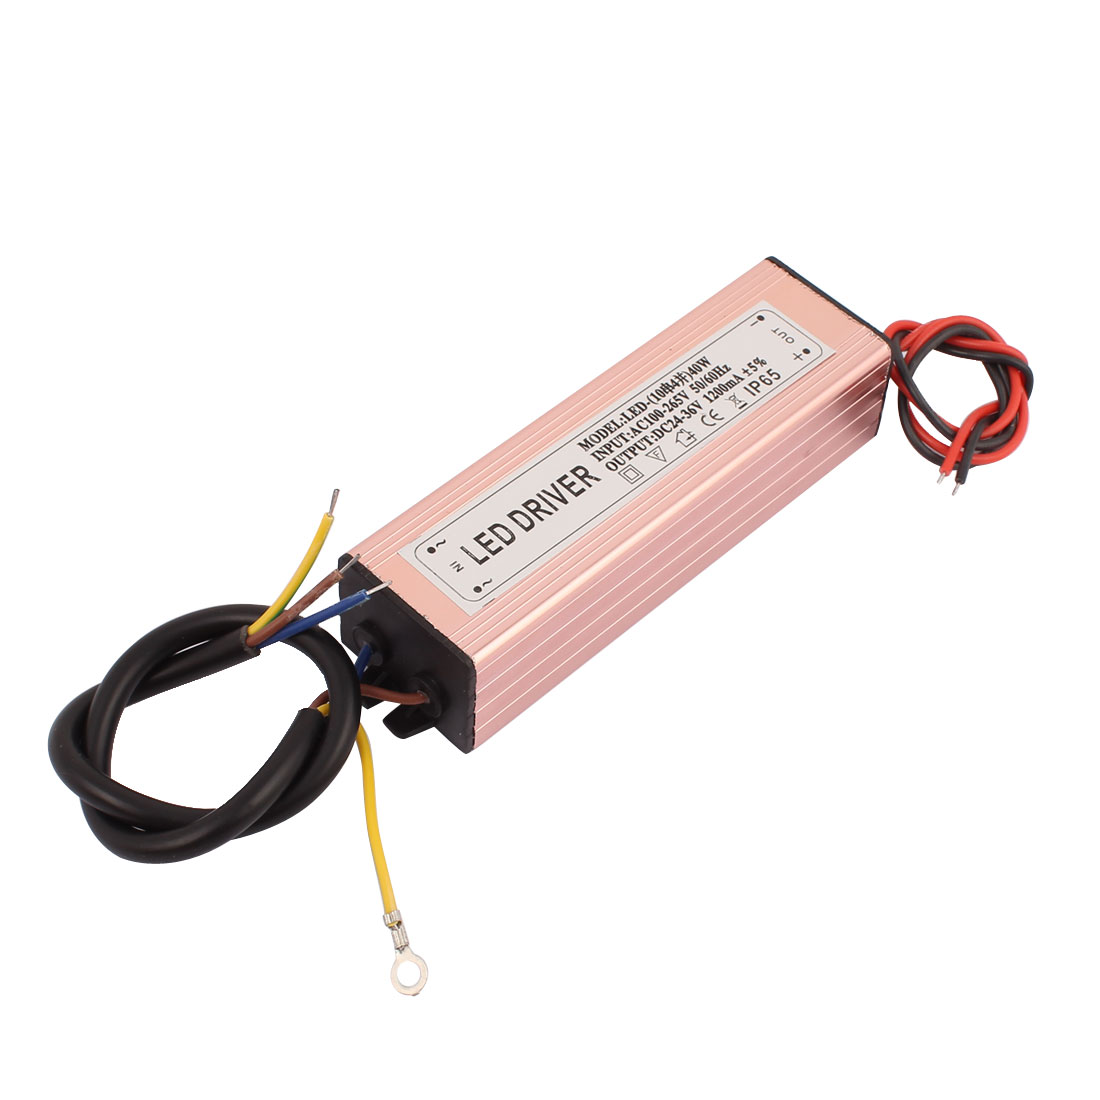 DC 24-40V Output 310mA LED Driver Power Supply for (8-12)x1W LED Strip Light